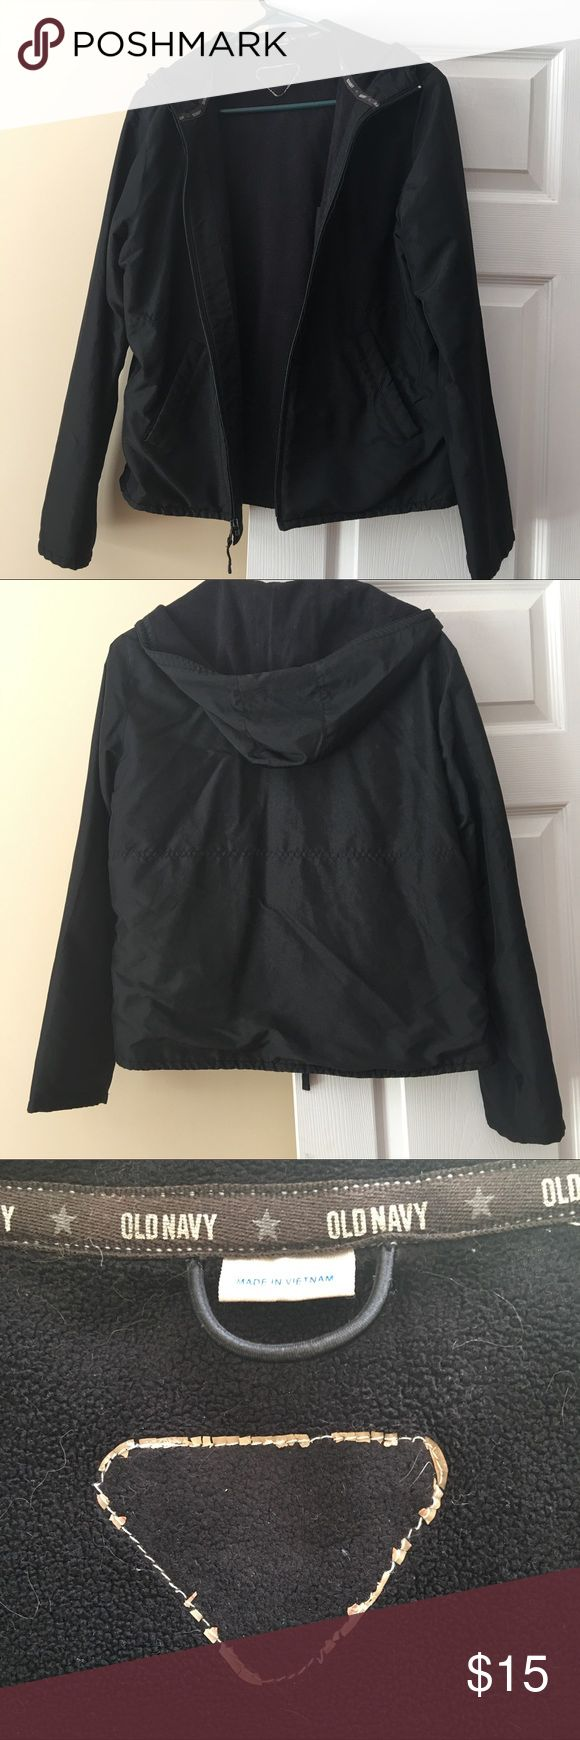 Old Navy Coat This is a black, Old Navy coat with an attached hood. It is size medium, but missing the size tag.  It has two outside pockets. No stains, marks, holes, or signs of wear. The fleece lining attracts lint. Old Navy Jackets & Coats